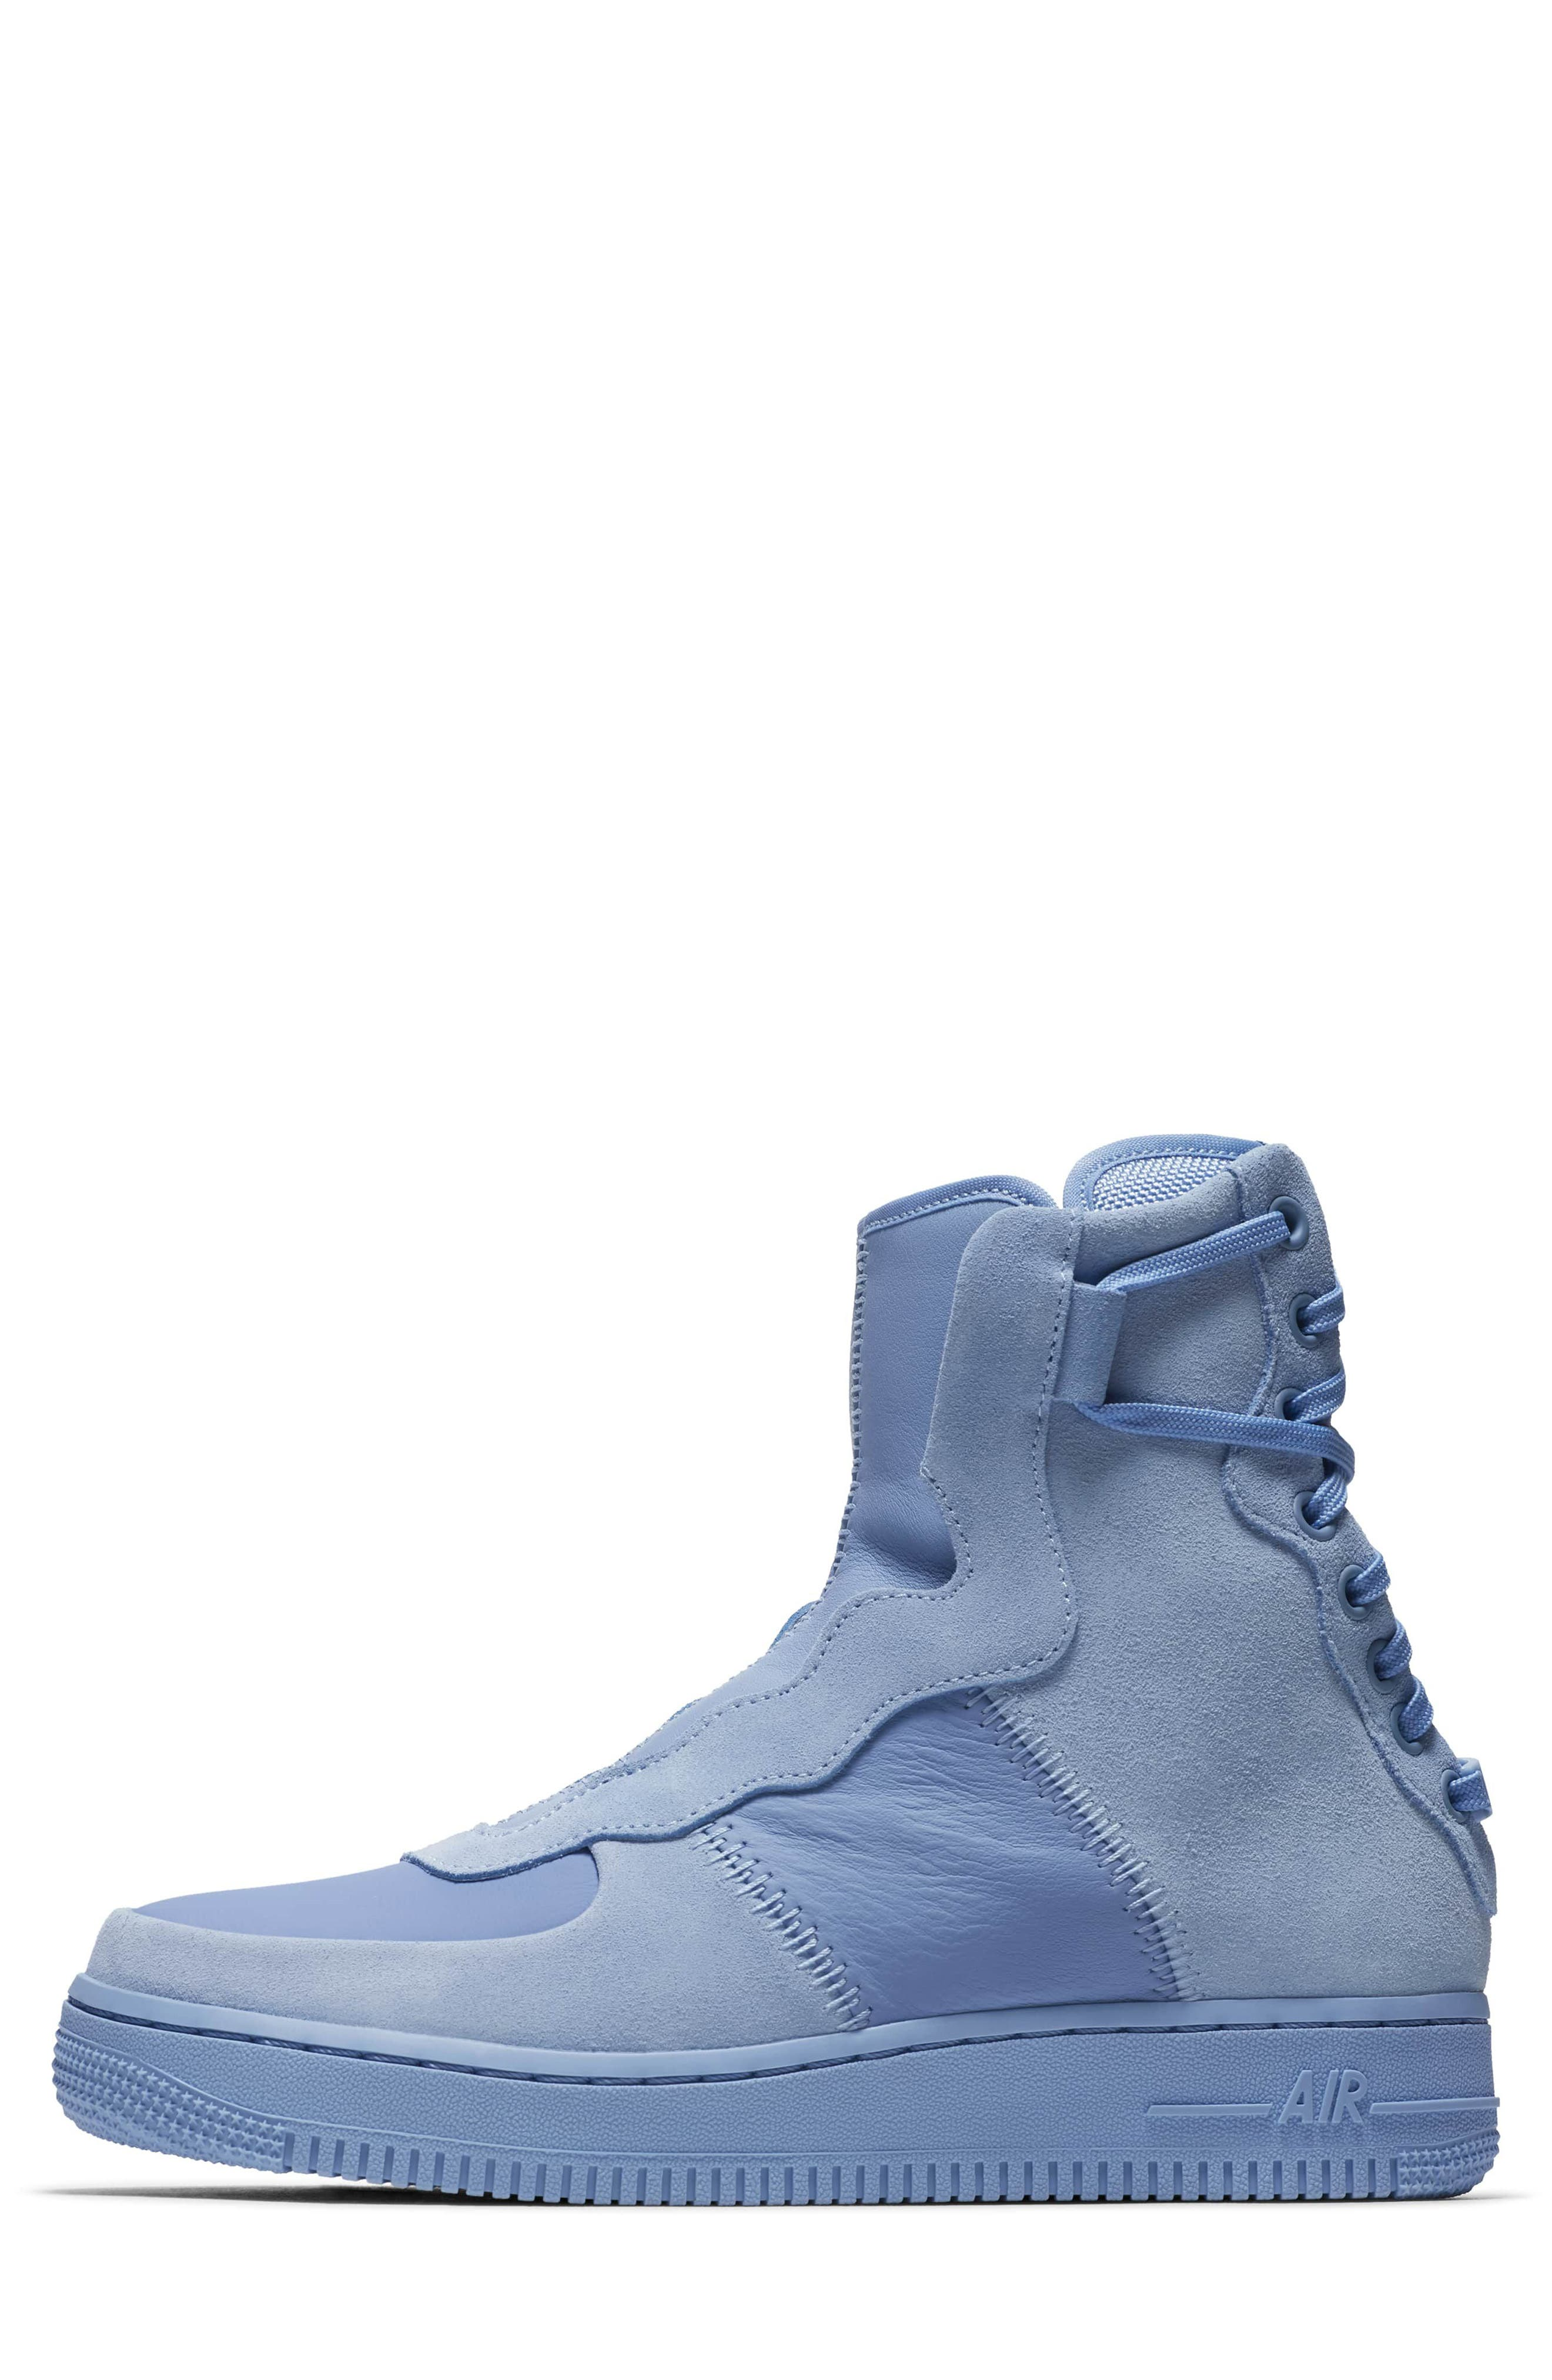 Air Force 1 Rebel XX High Top Sneaker,                             Alternate thumbnail 3, color,                             LIGHT BLUE